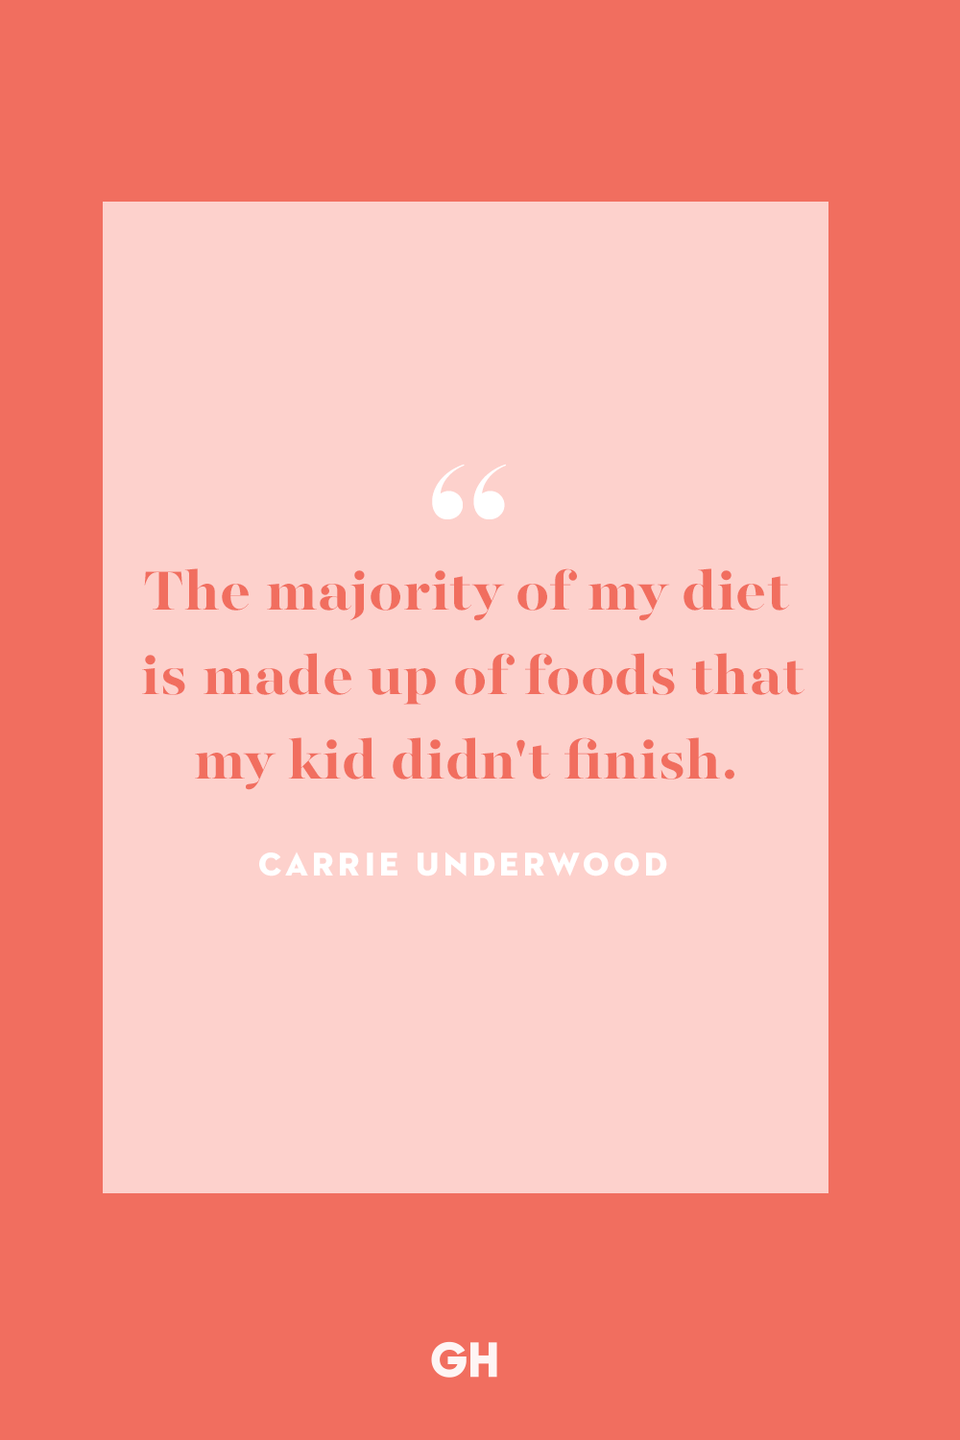 """<p>The majority of my diet is made up of foods that my kid didn't finish.</p><p><strong>RELATED:</strong> <a href=""""https://www.goodhousekeeping.com/life/parenting/g28541976/best-kids-quotes/"""" rel=""""nofollow noopener"""" target=""""_blank"""" data-ylk=""""slk:The Best Kids Quotes, Because Raising Children Goes Faster Than You'd Think"""" class=""""link rapid-noclick-resp"""">The Best Kids Quotes, Because Raising Children Goes Faster Than You'd Think</a></p>"""